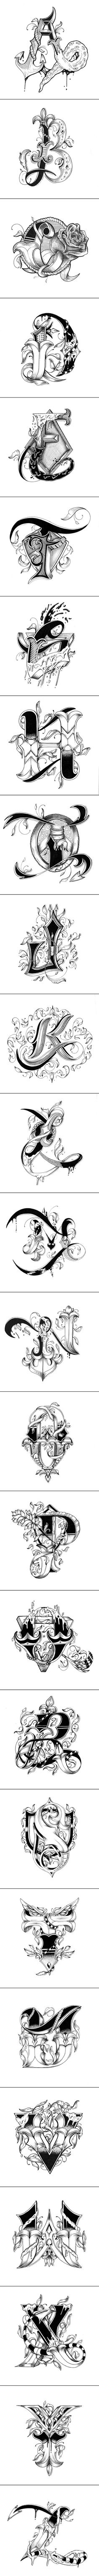 Love Letters Alphabet Hand Drawn by Raul Alejandro: